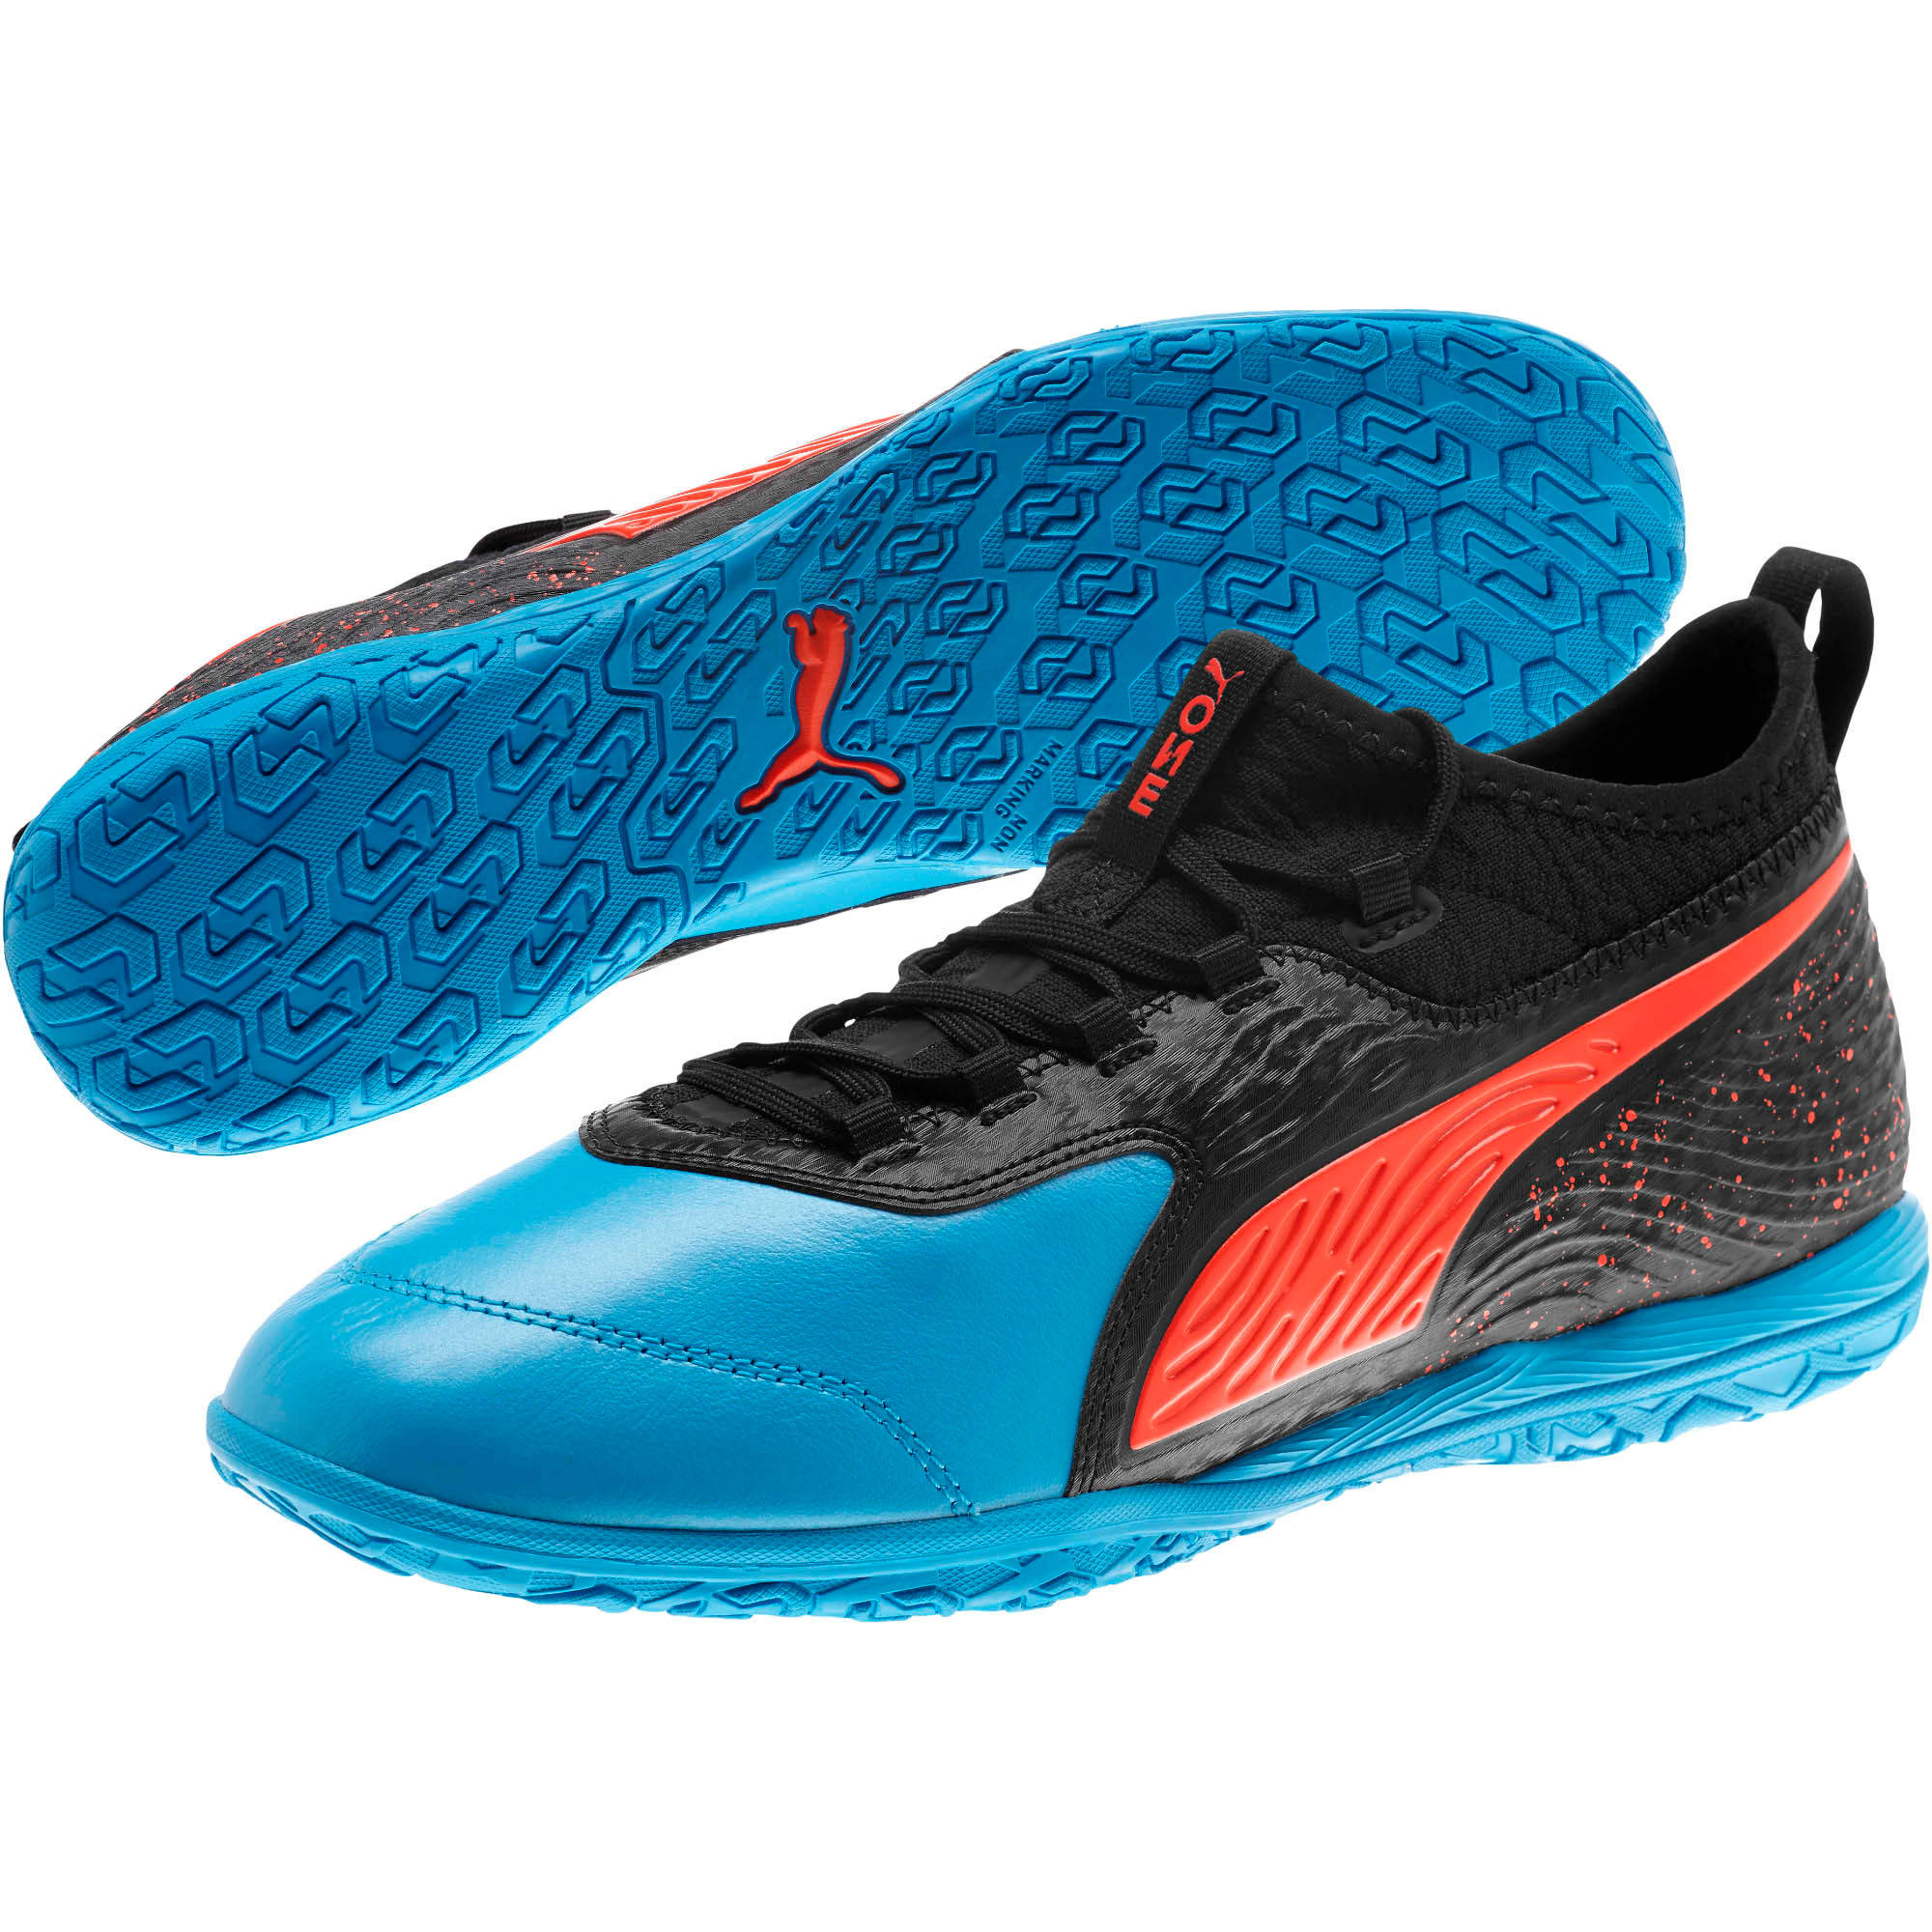 Thumbnail 2 of PUMA ONE 19.3 IT Men's Soccer Shoes, Bleu Azur-Red Blast-Black, medium